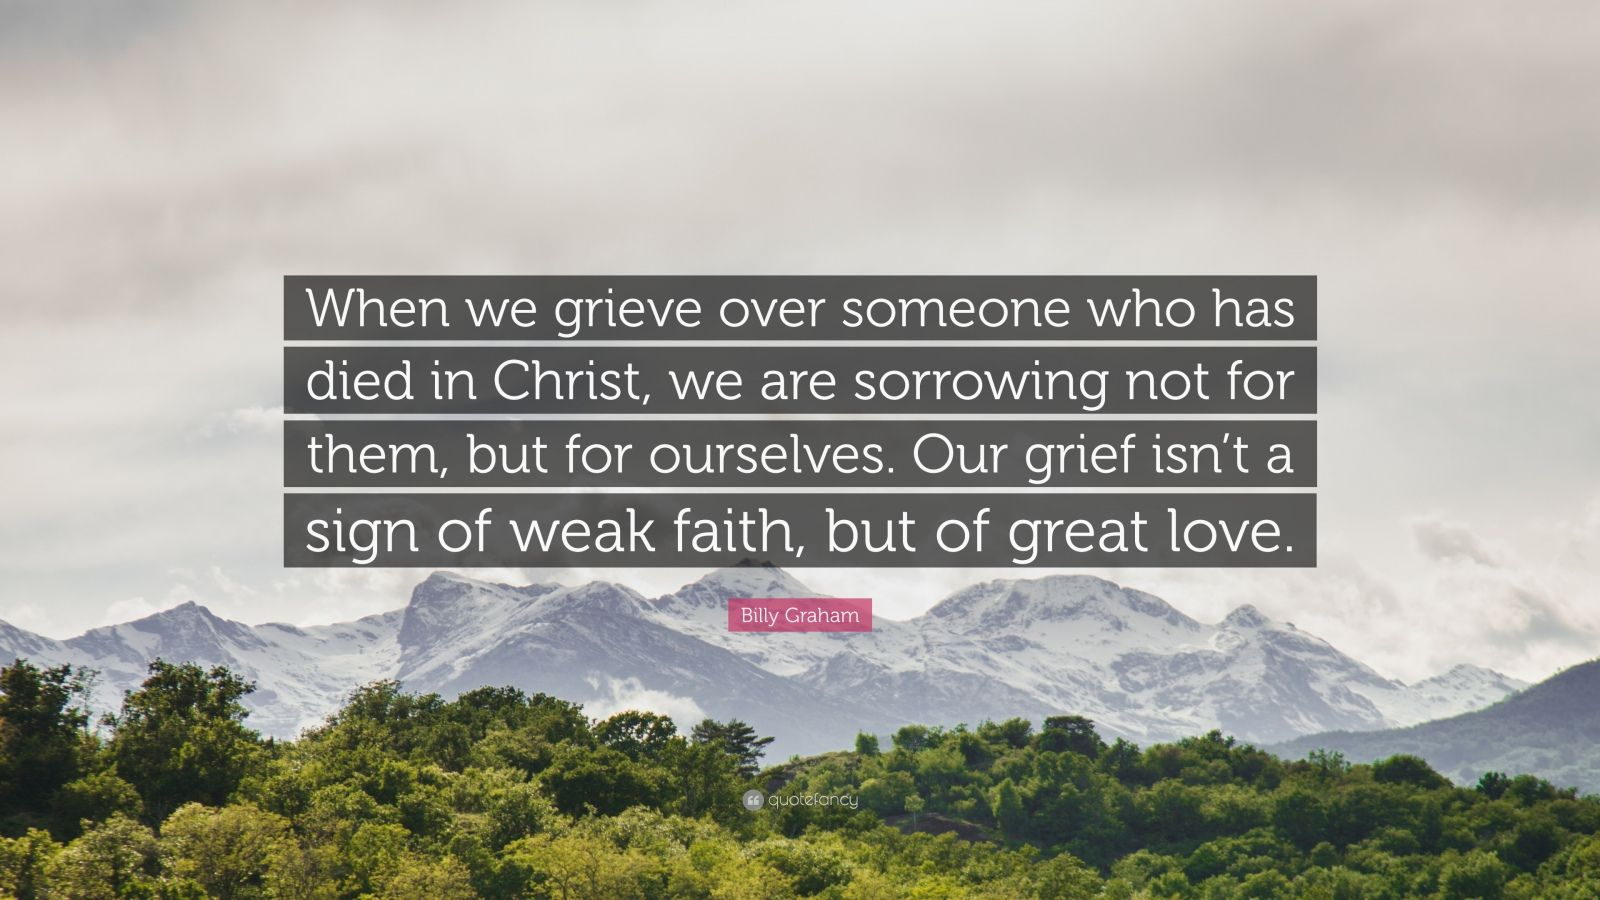 """Billy Graham Quote: """"When we grieve over someone who has died in Christ, we are sorrowing not for them, but for ourselves. Our grief isn't a sign of weak faith, but of great love."""""""